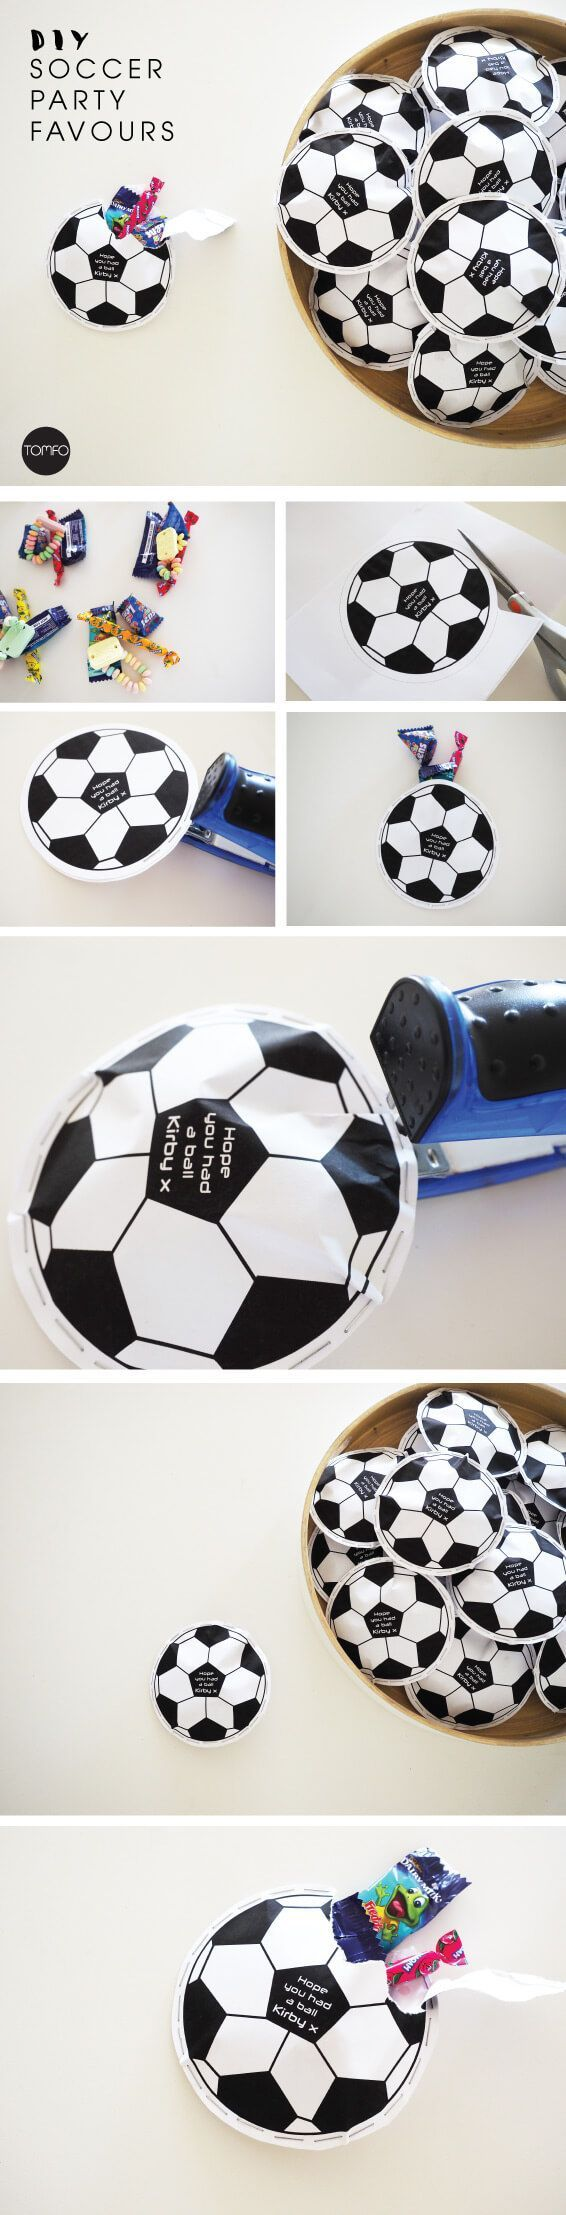 Planning A Soccer Party Try These Diy Soccer Party Favours Too Cute There S A Free Printable And Other Soccer Party Favors Soccer Theme Parties Soccer Party